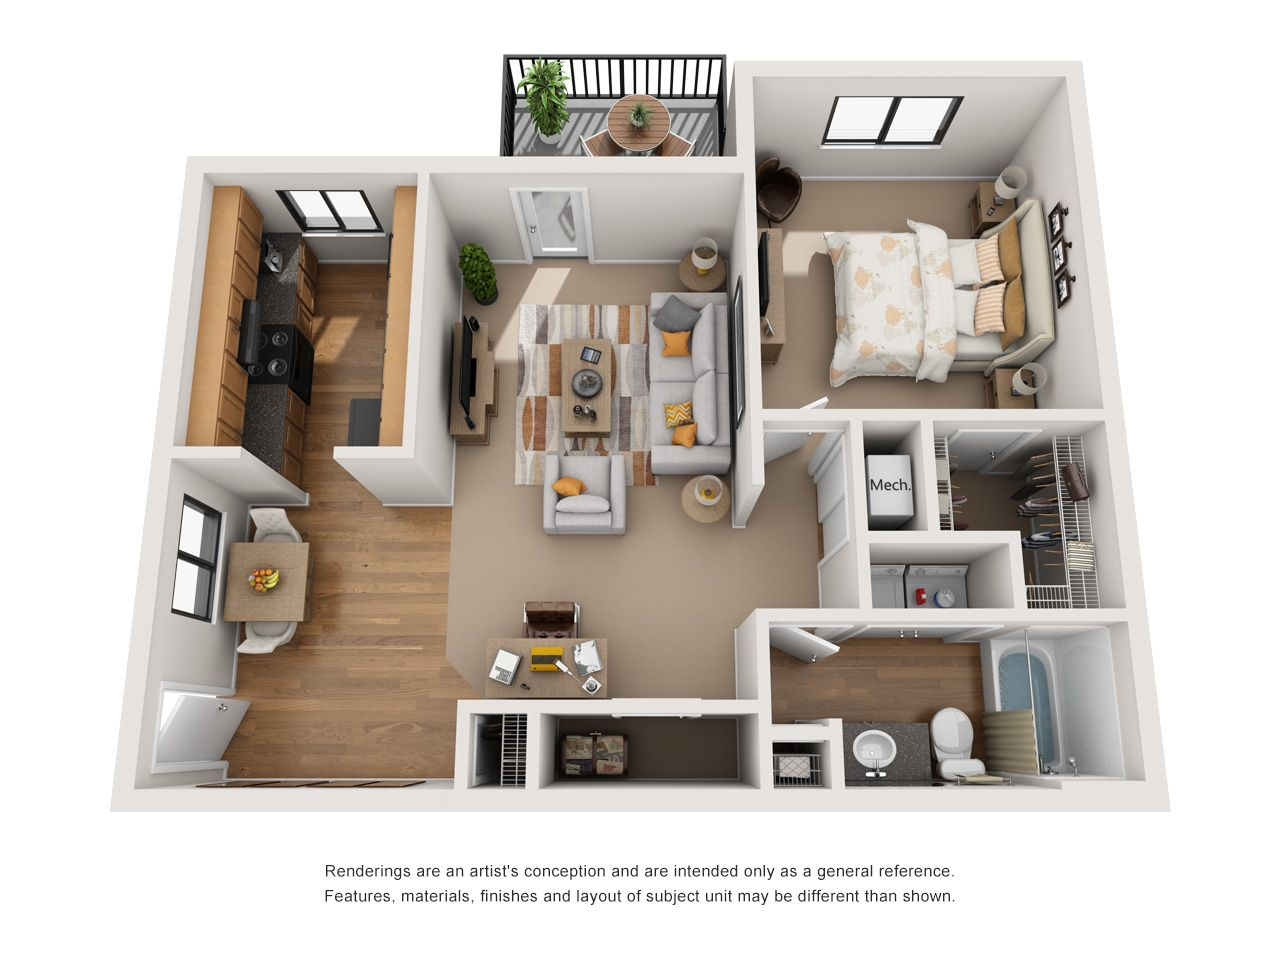 Pet Friendly Apartments In Indianapolis Indiana For Rent Indianapolis Indiana Apartment Steadfast Sims House Design Two Bedroom Tiny House Dorm Design